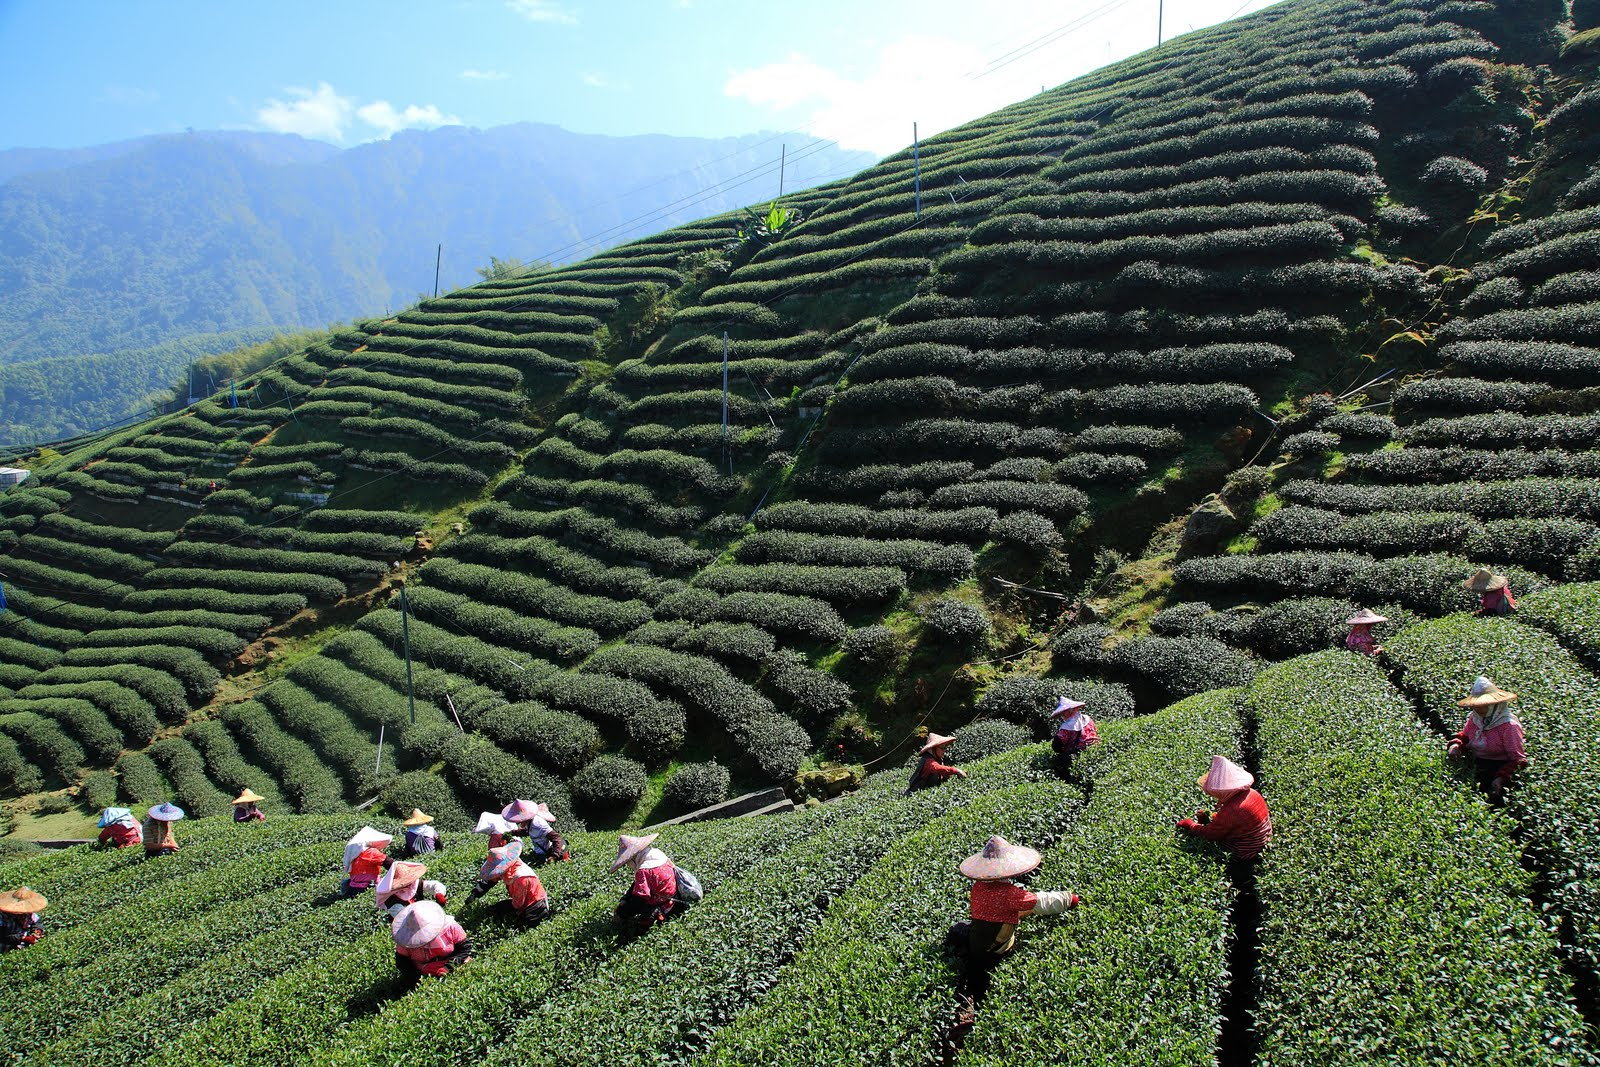 darjeeling-the-mecca-of-tea-secret-world